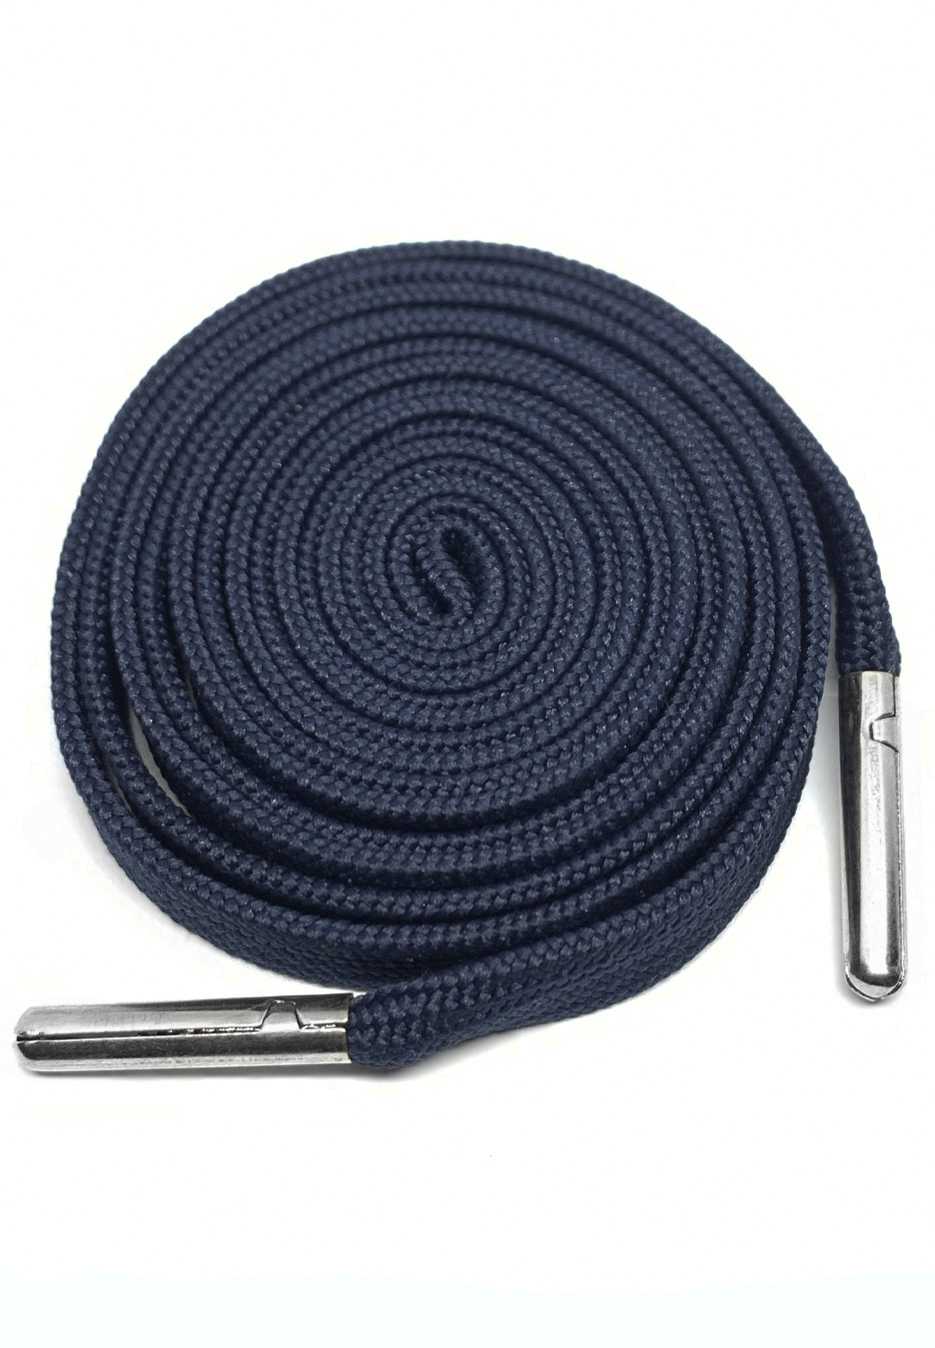 FLAT SHOELACES - NAVY / SILVER TIP 1